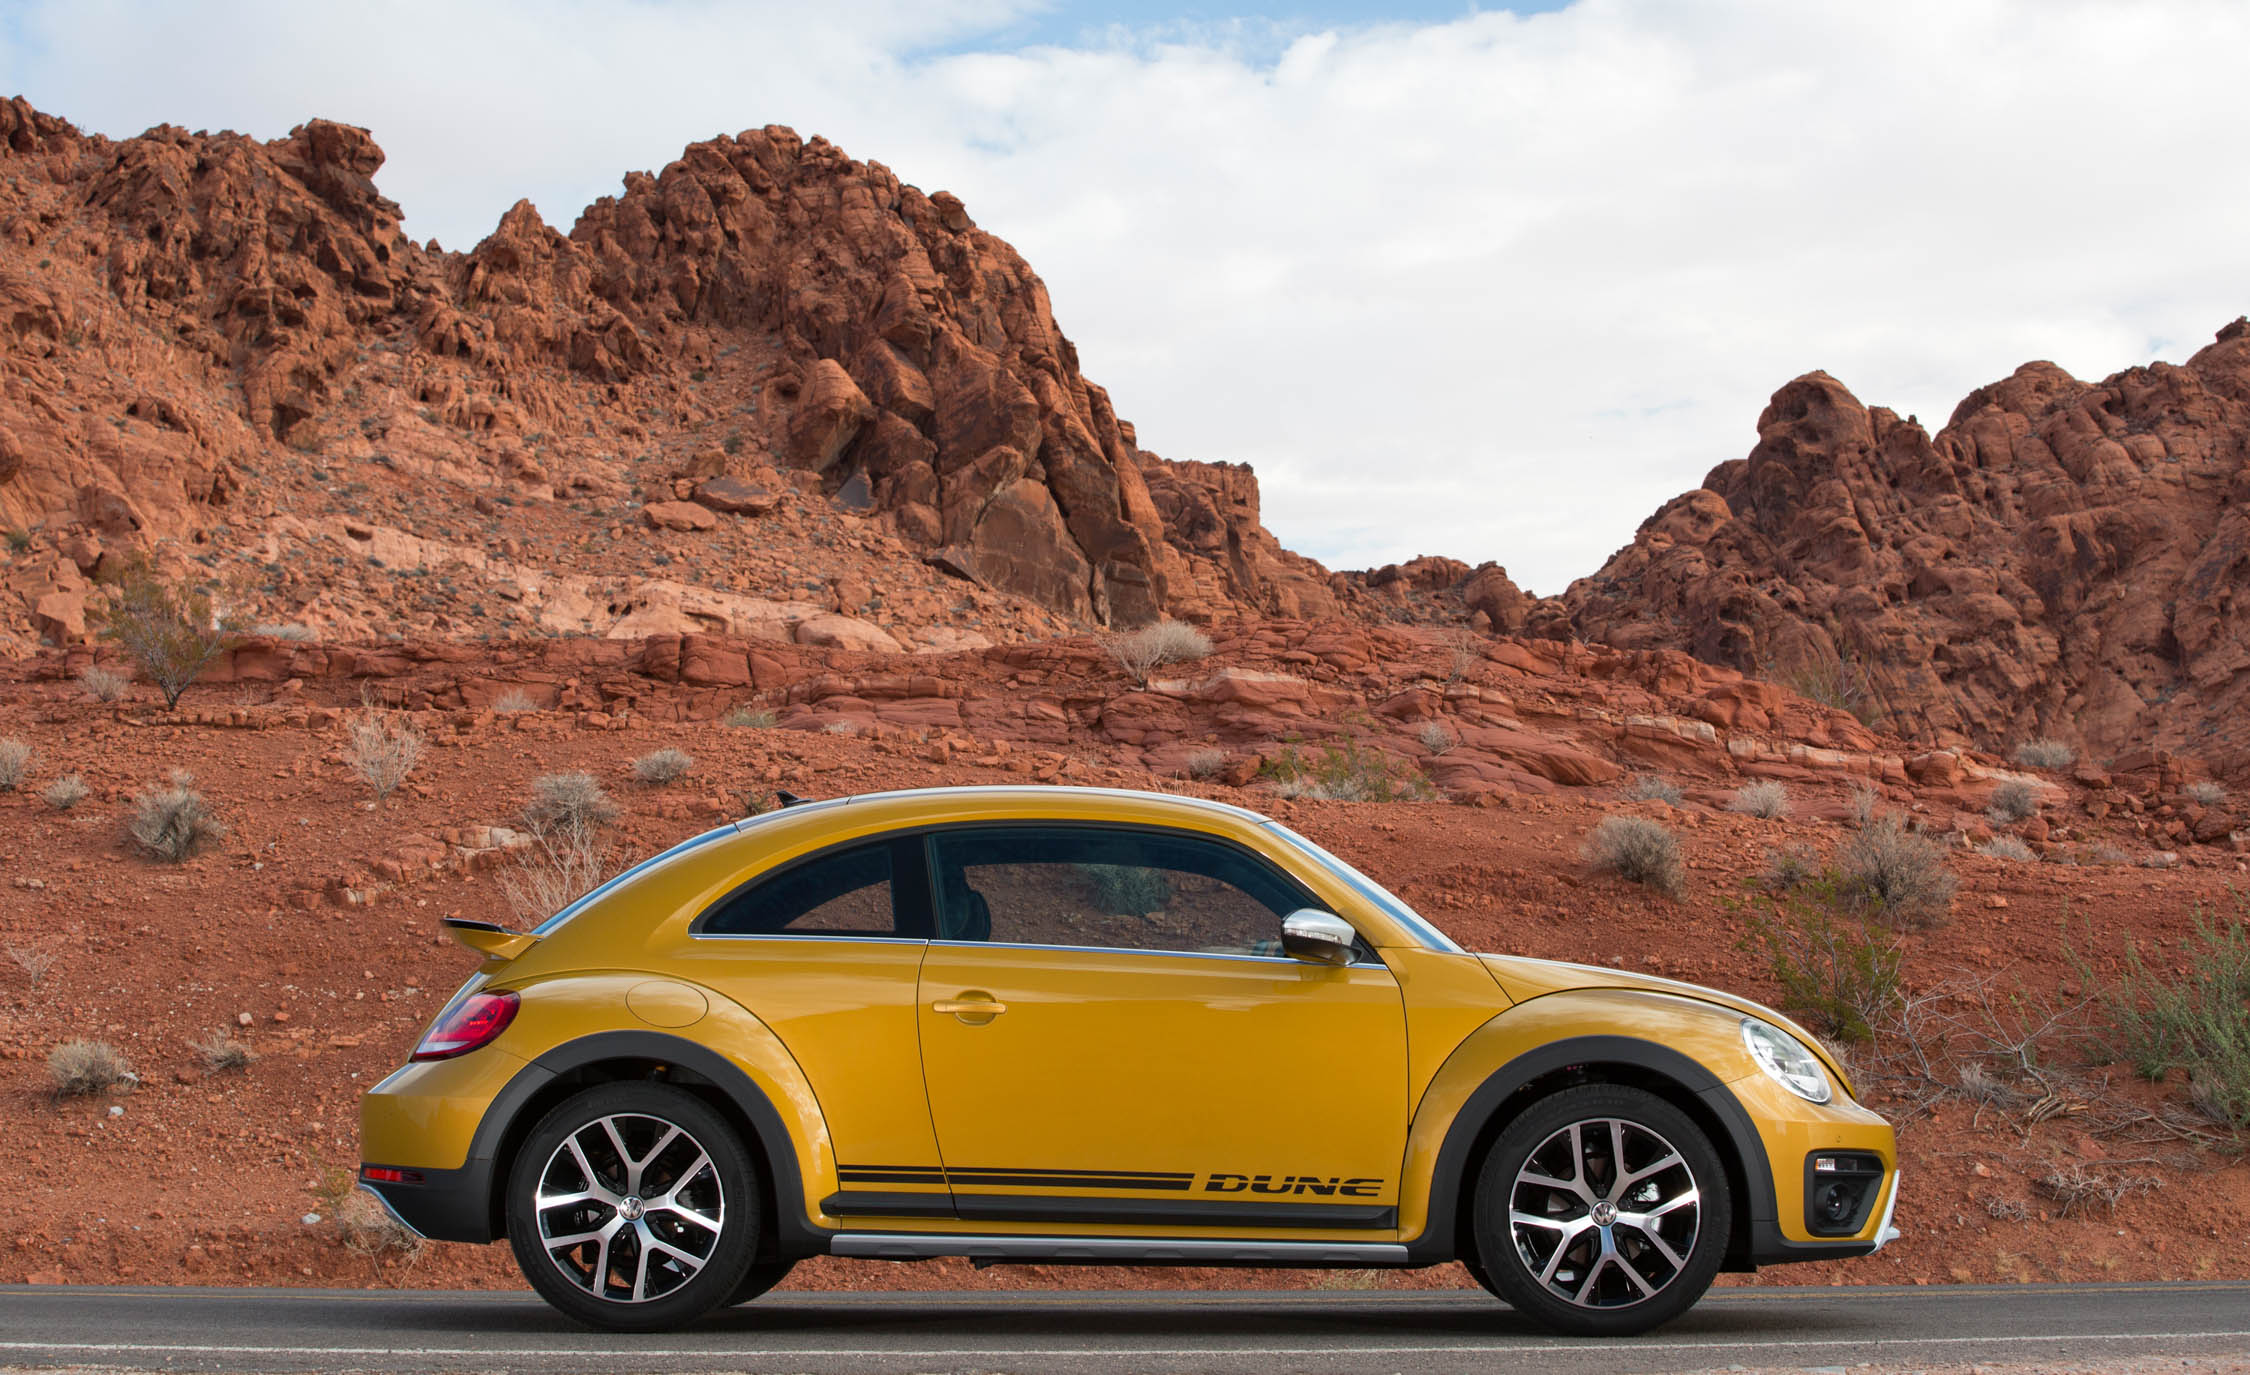 2016 Volkswagen Beetle Dune Coupe Exterior Full Side (View 27 of 32)